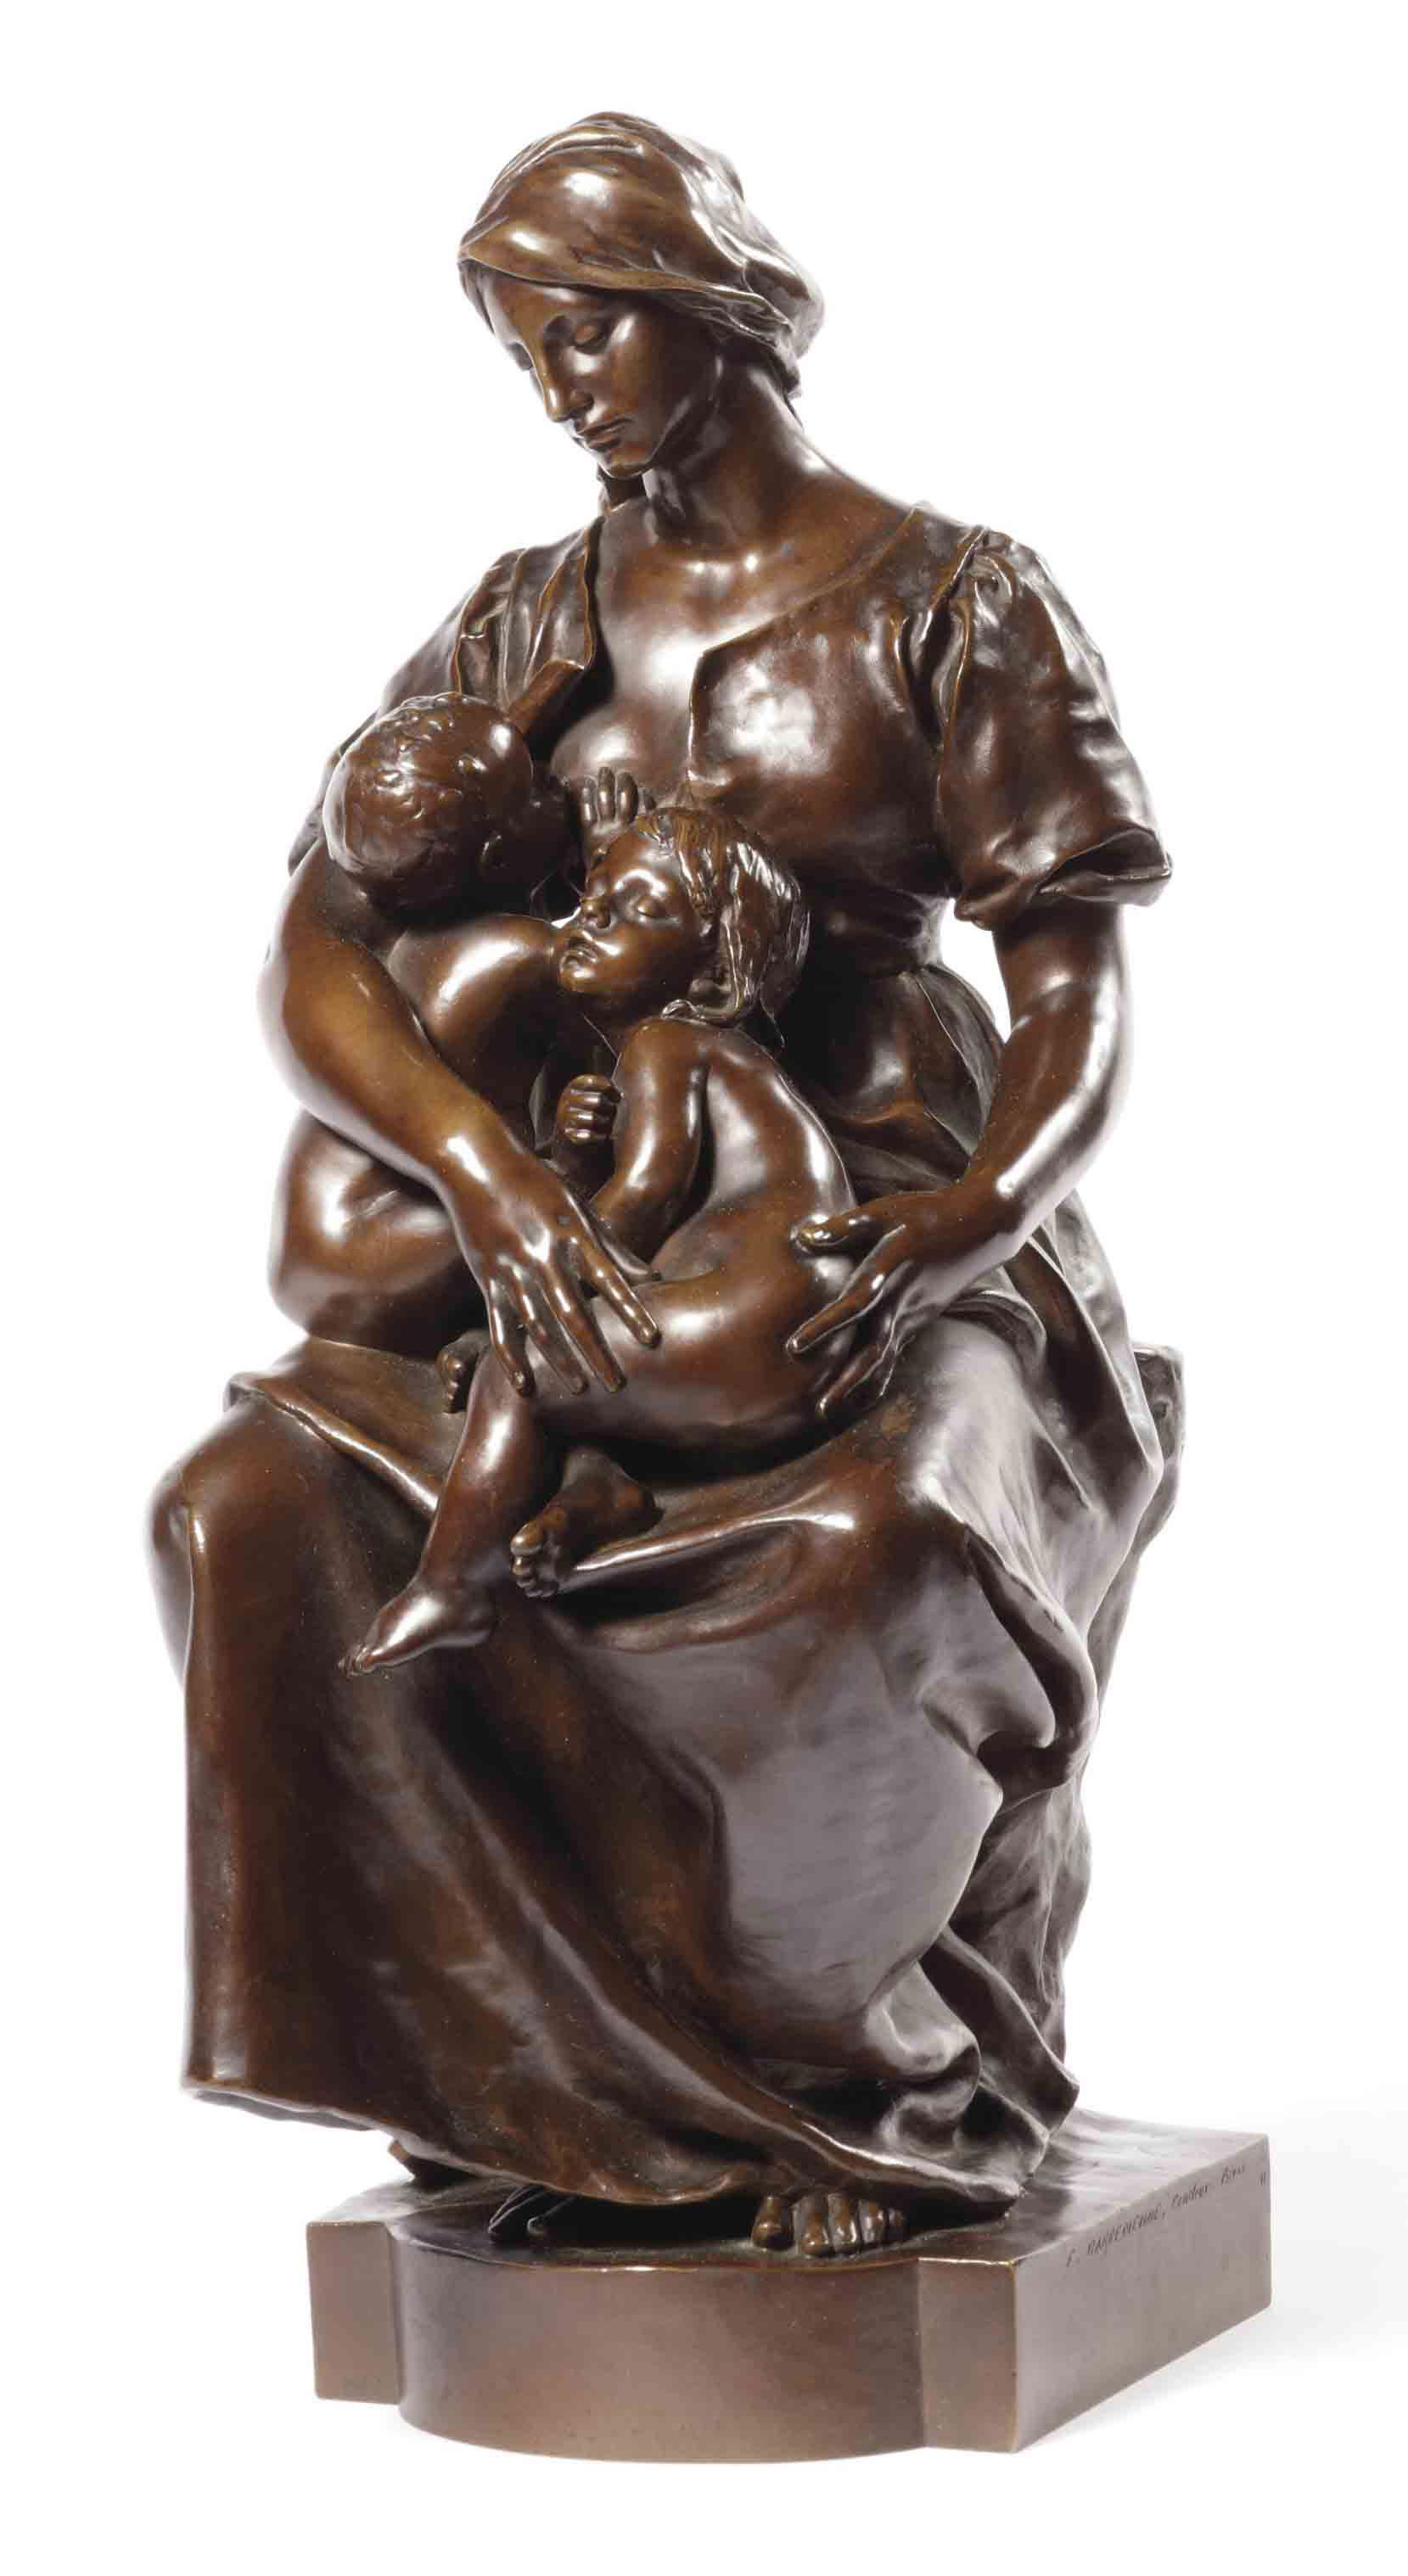 A FRENCH BRONZE GROUP OF A MOTHER AND CHILDREN, ENTITLED 'LA CHARITÉ'